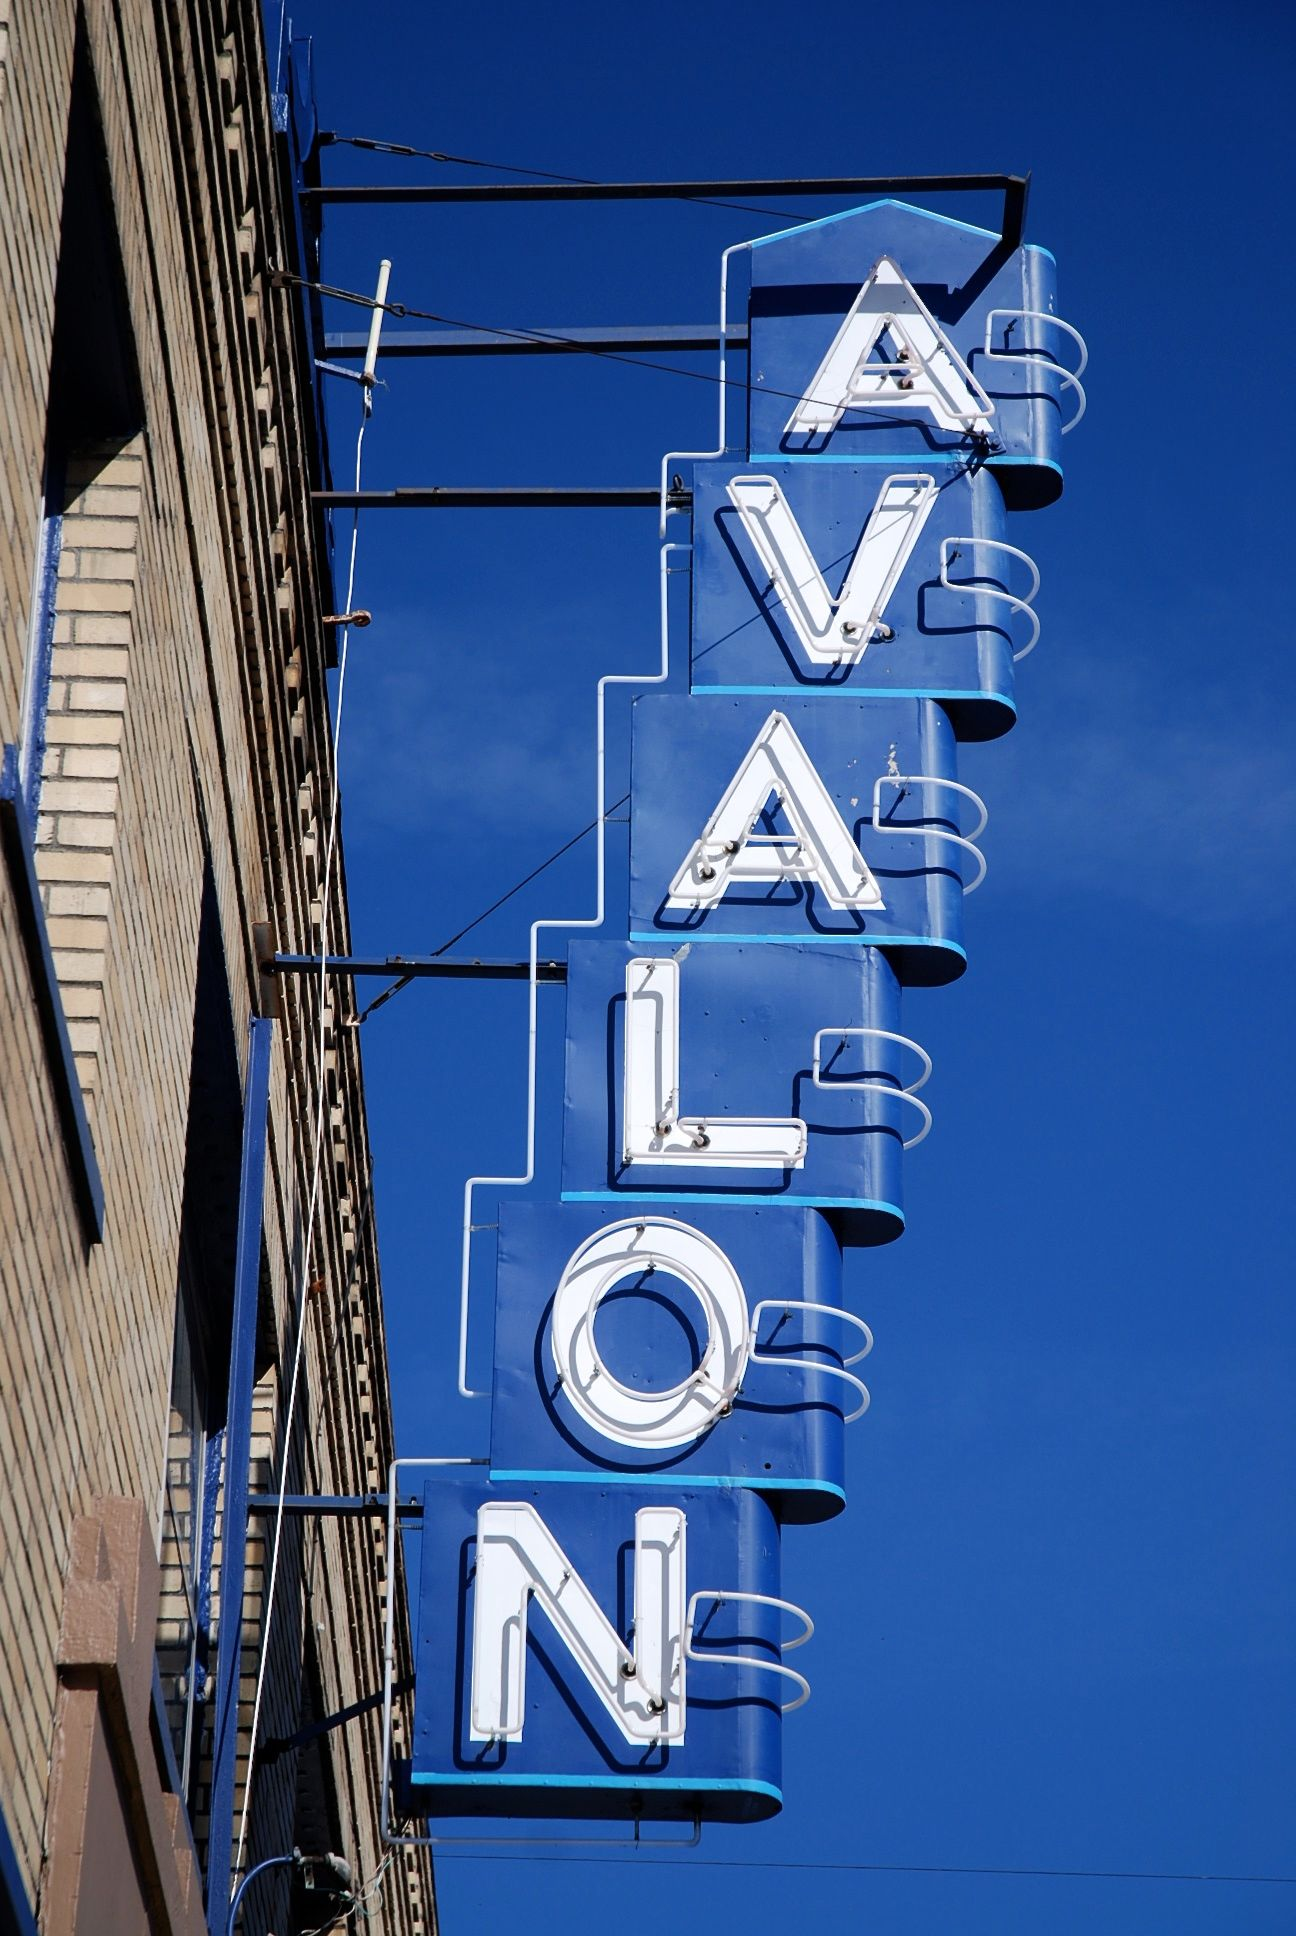 Avalon Theater neon sign. Three screens, nickel games, snack bar and videos. In operation since 1925. Hawthorne District. Portland, OR. Zippertravel.com Digital Edition